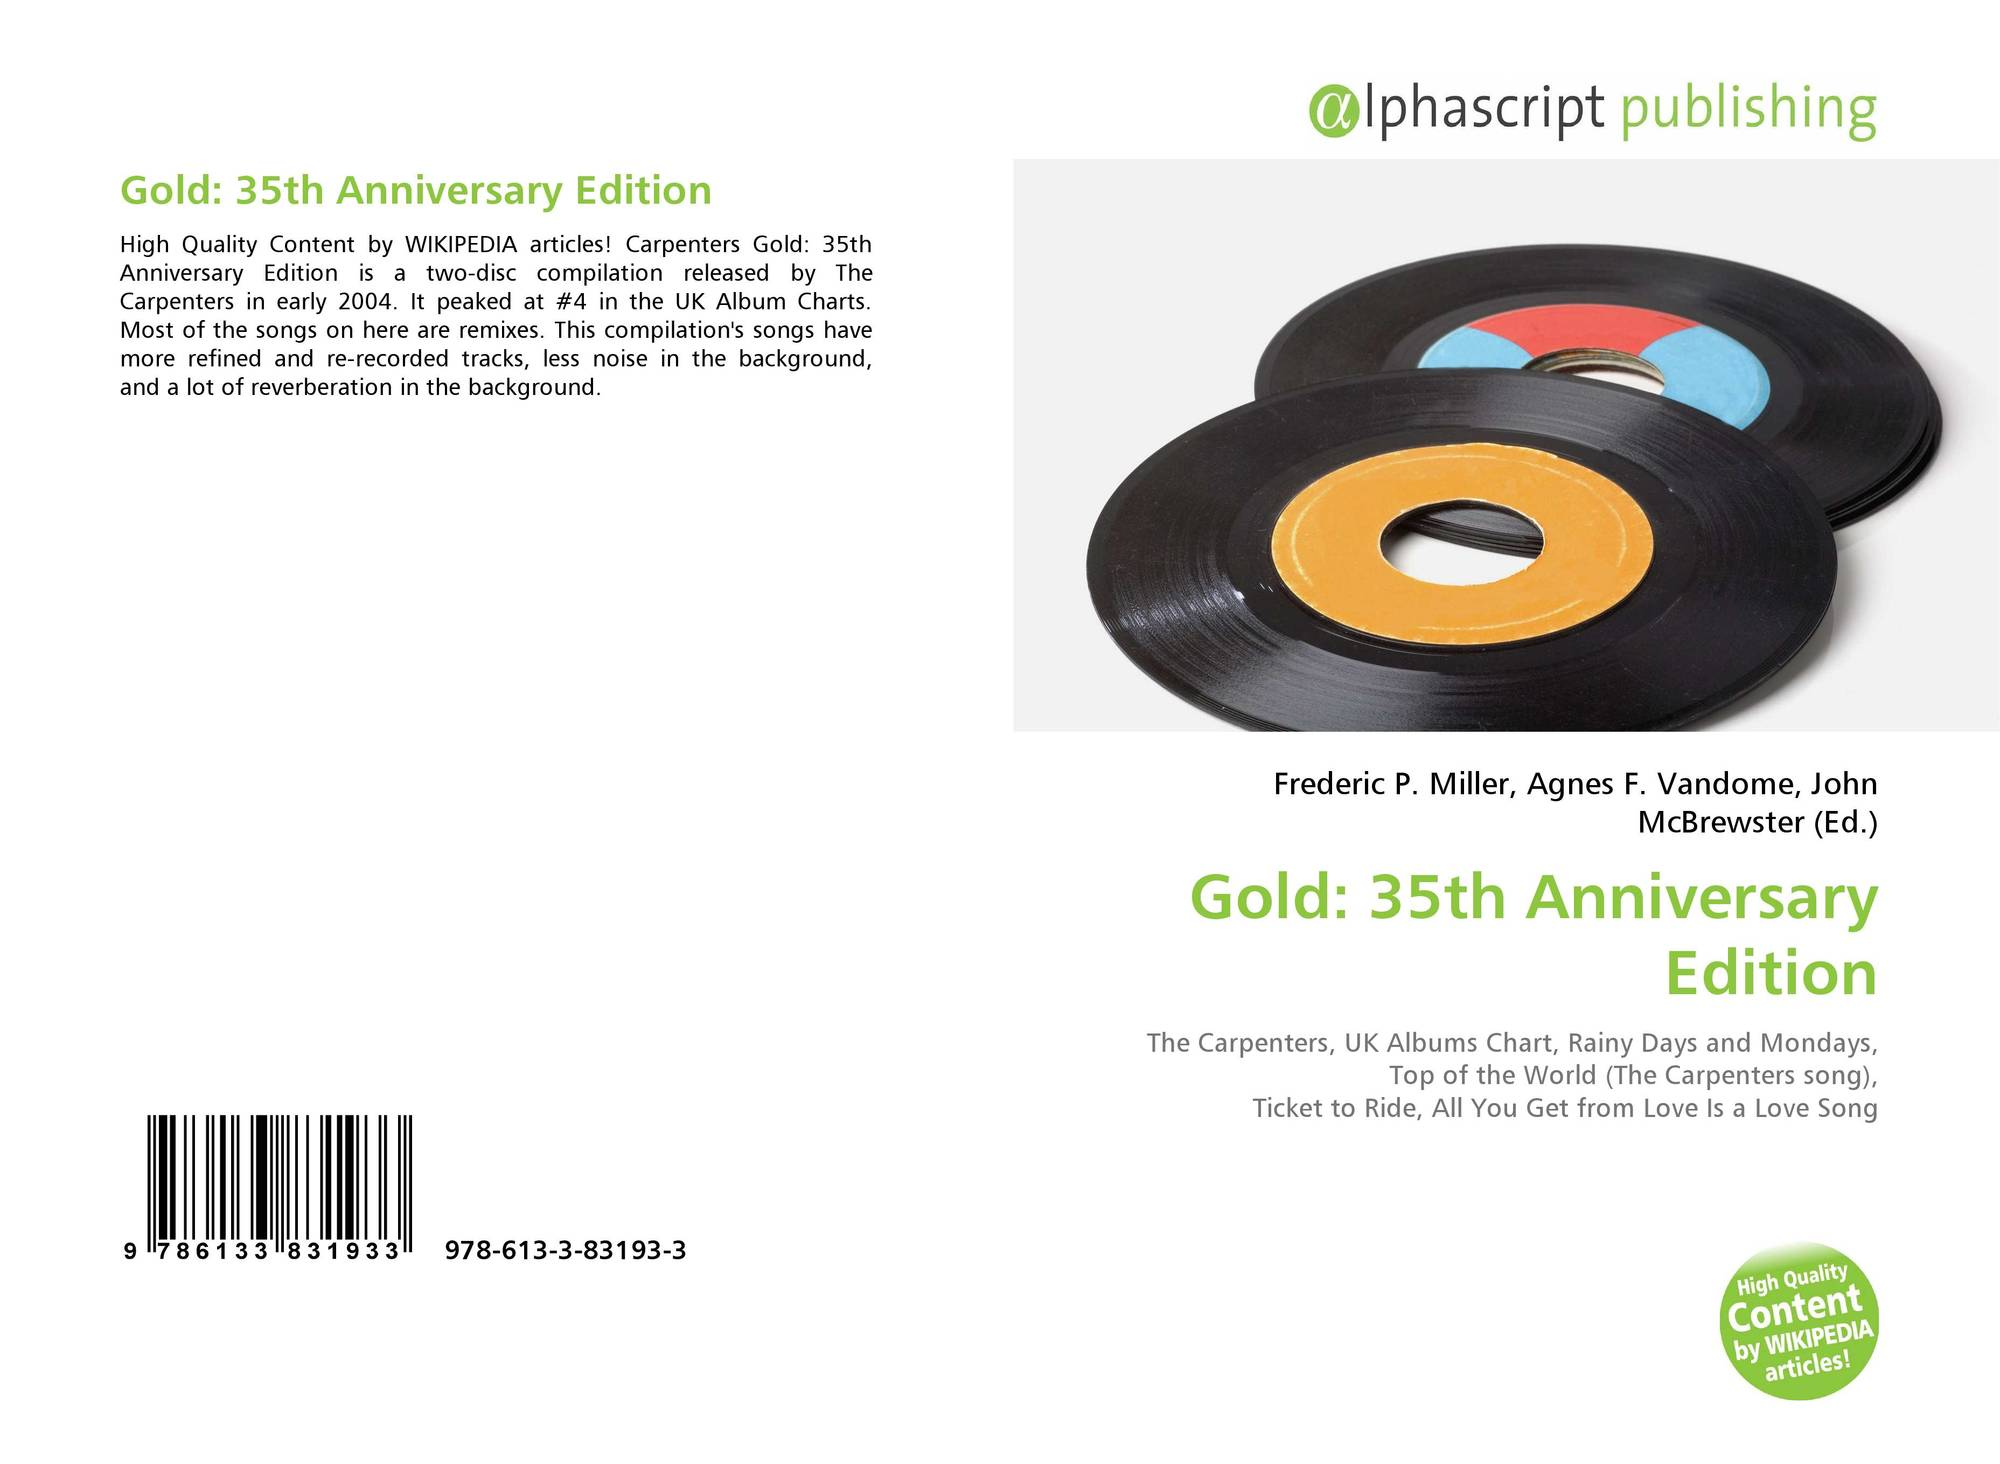 Gold: 35th Anniversary Edition, 978-613-3-83193-3